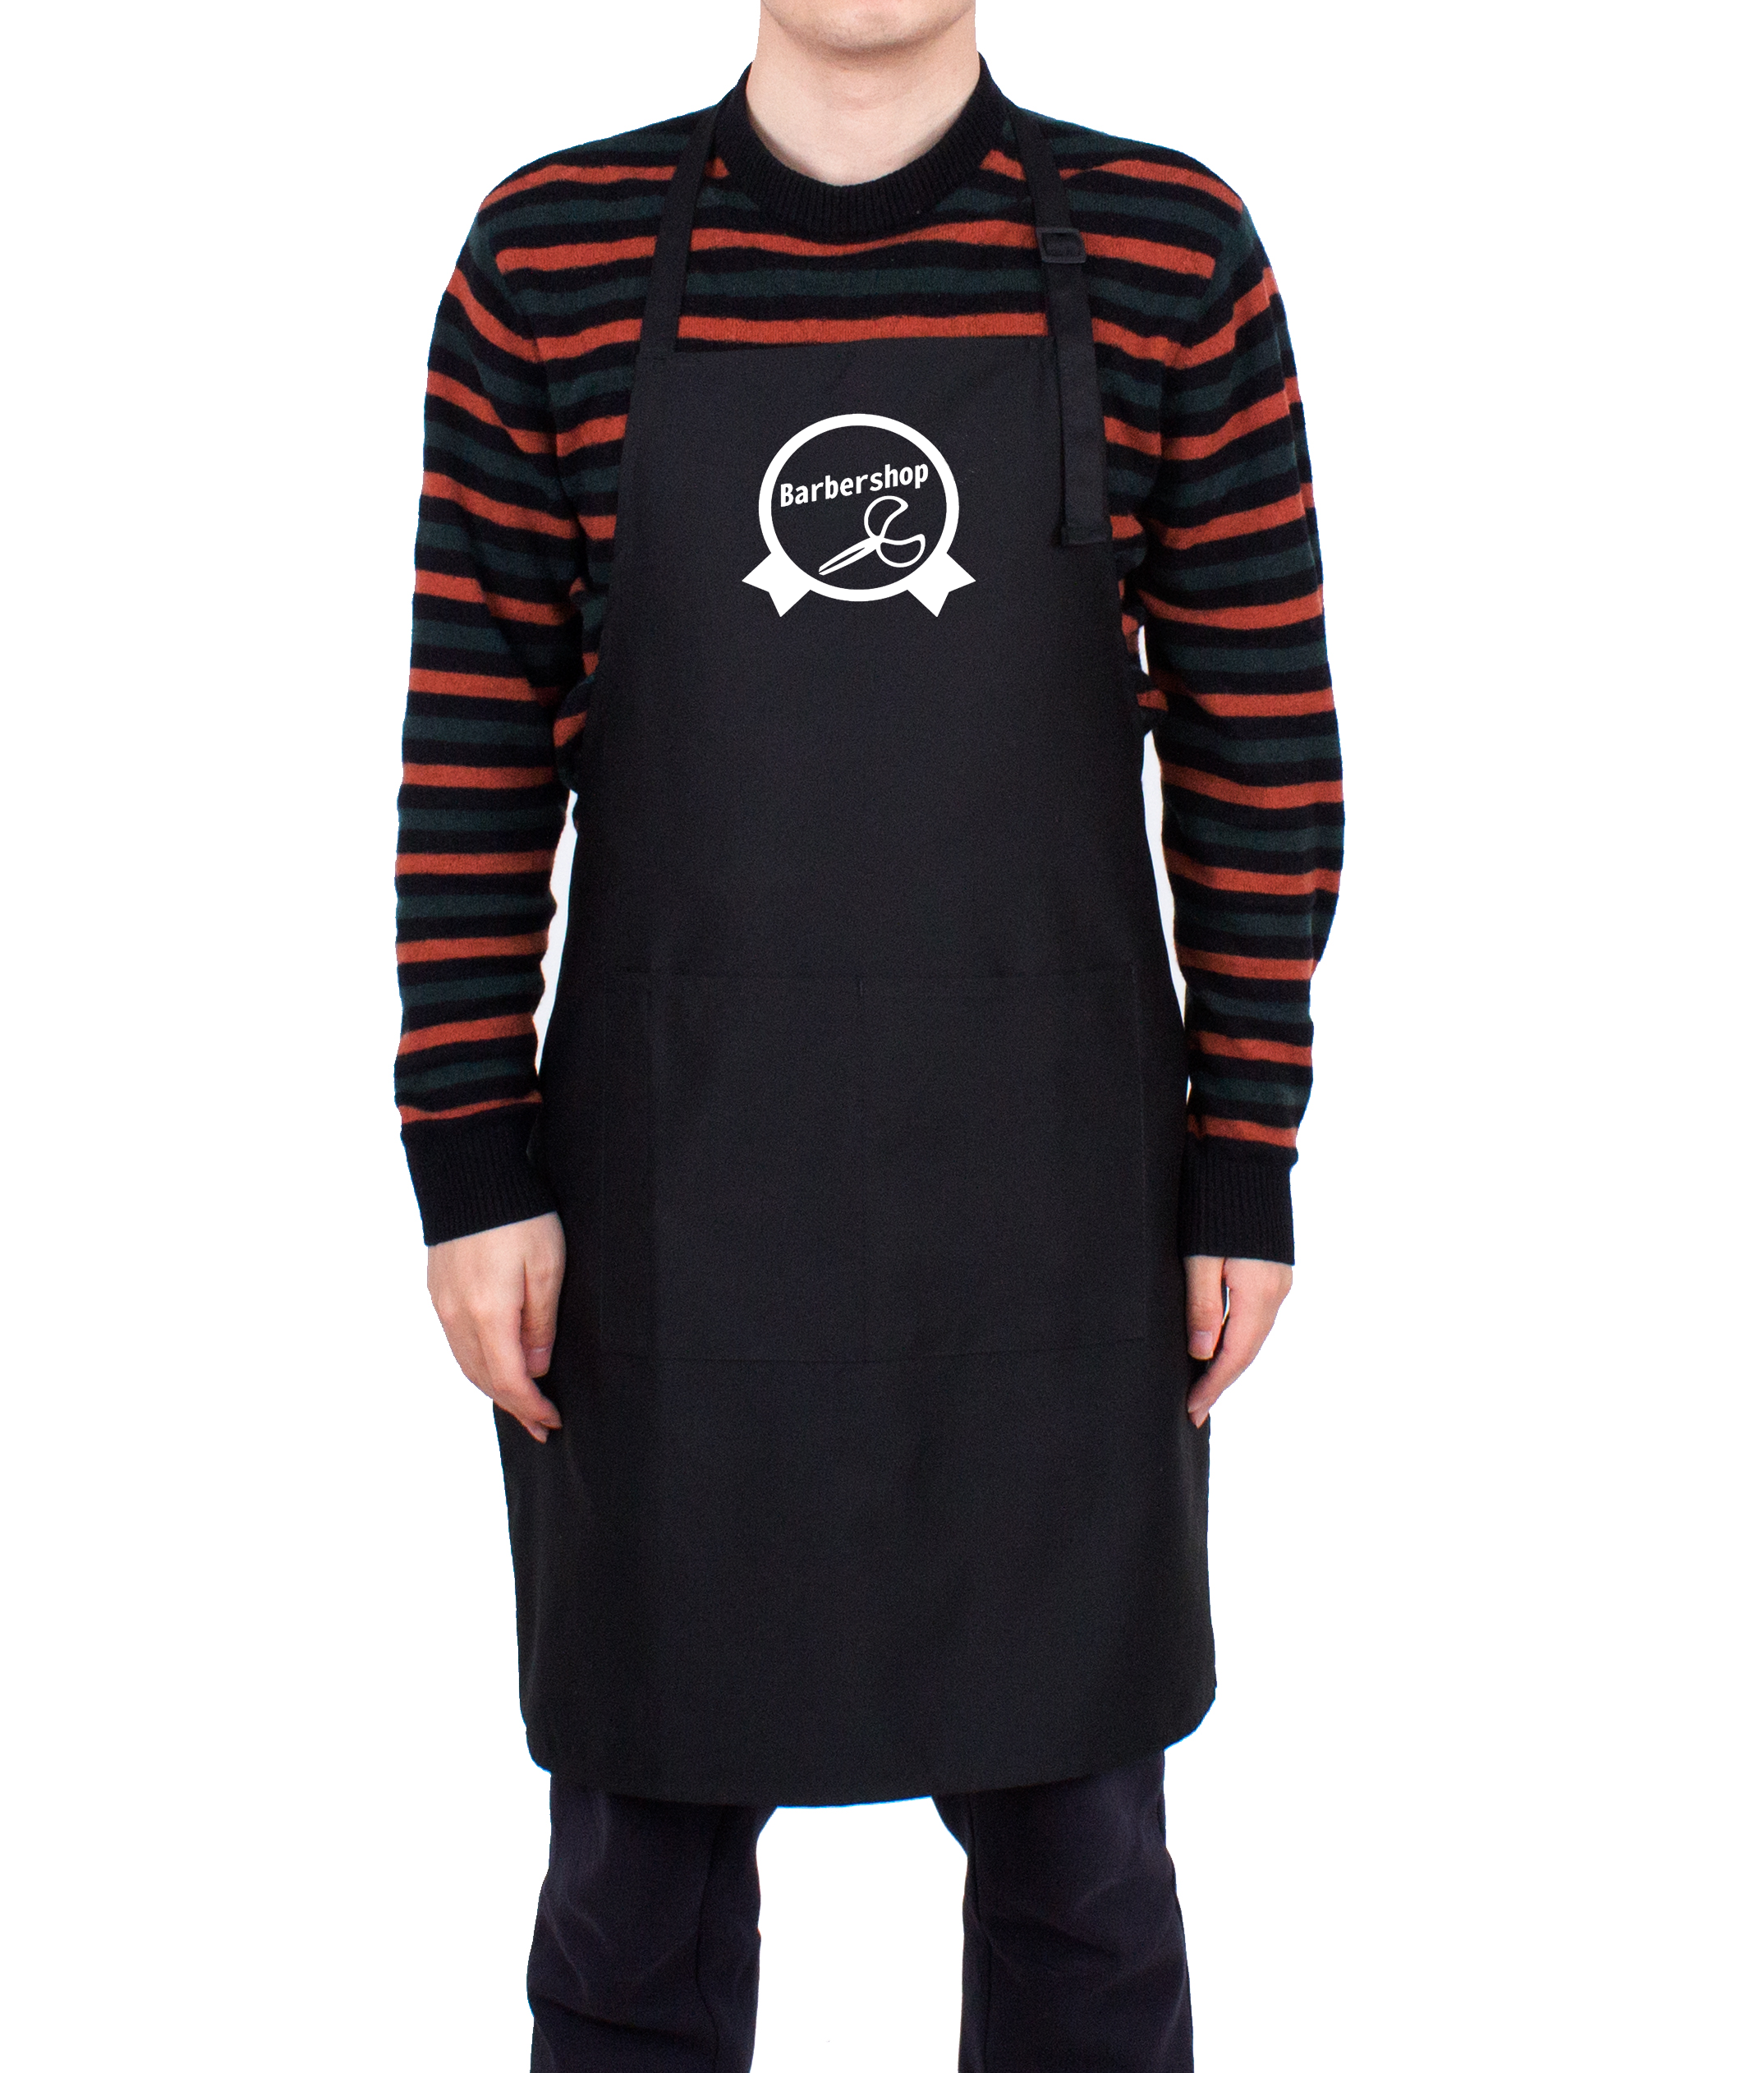 Hotel chef apron customized logo aprons kitchen cooking with waterproof in Cotton Polyester adjustable